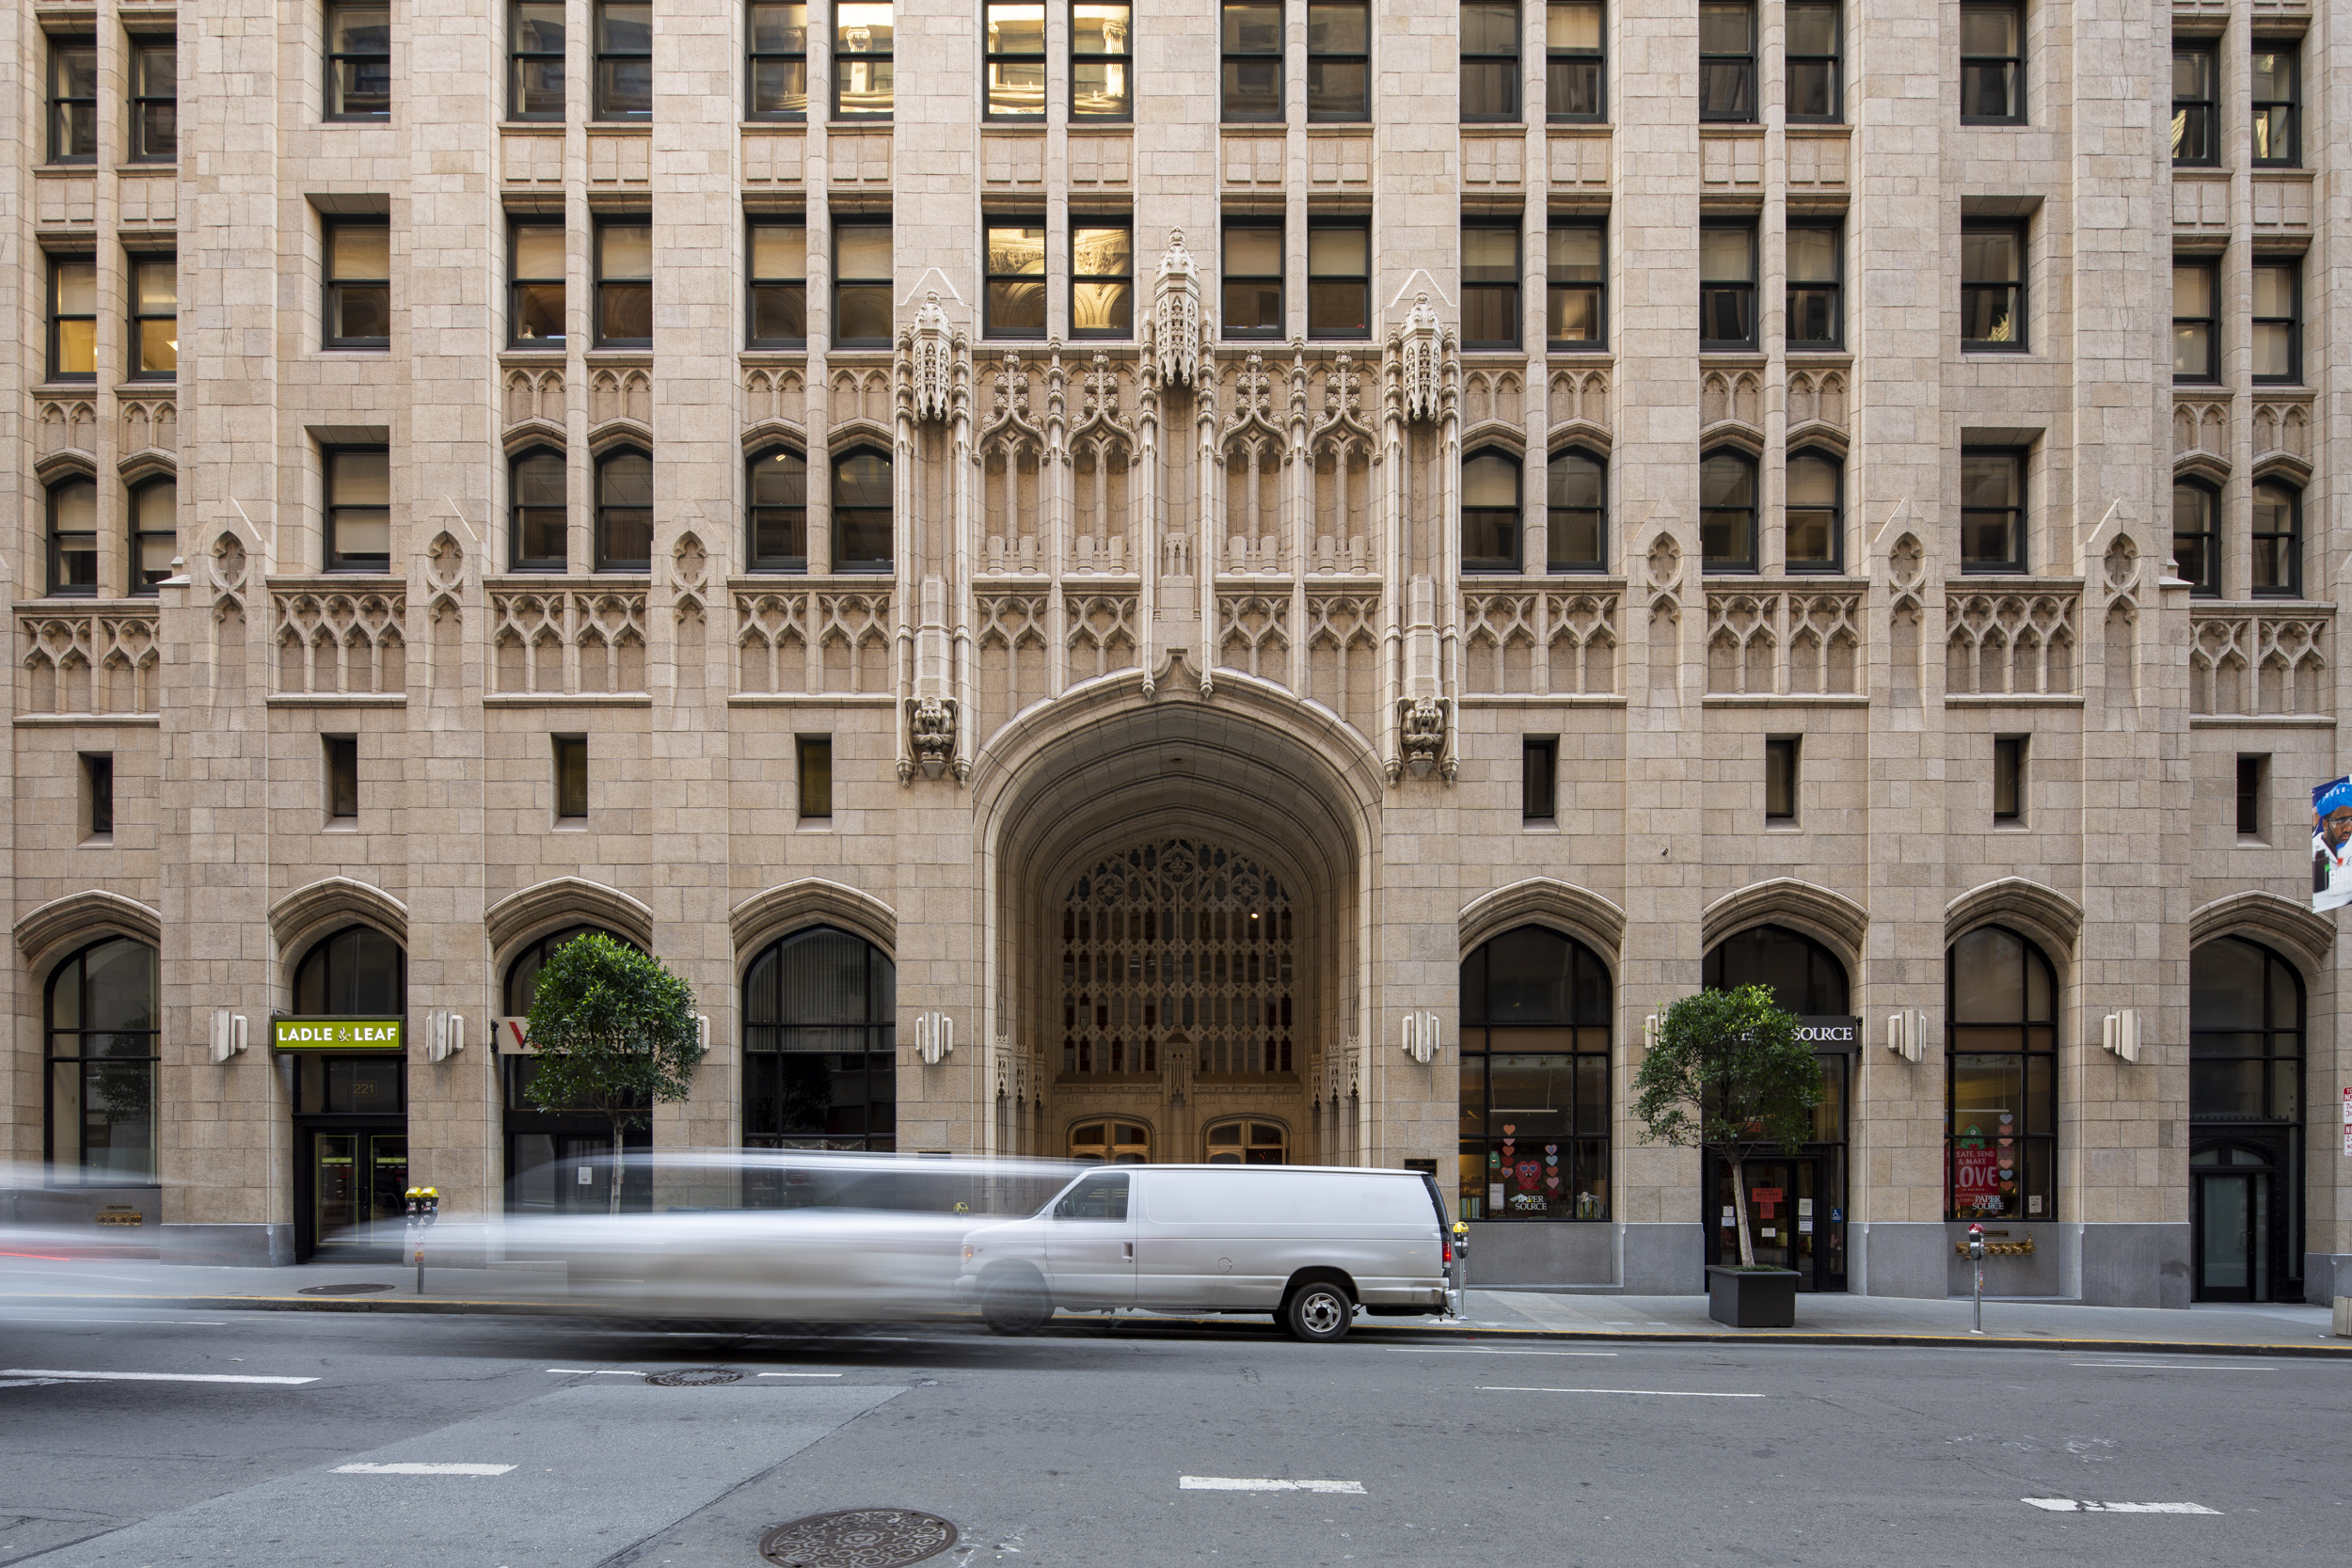 The Russ Building at 235 Montgomery Street front entrance, image by Andrew Campbell Nelson